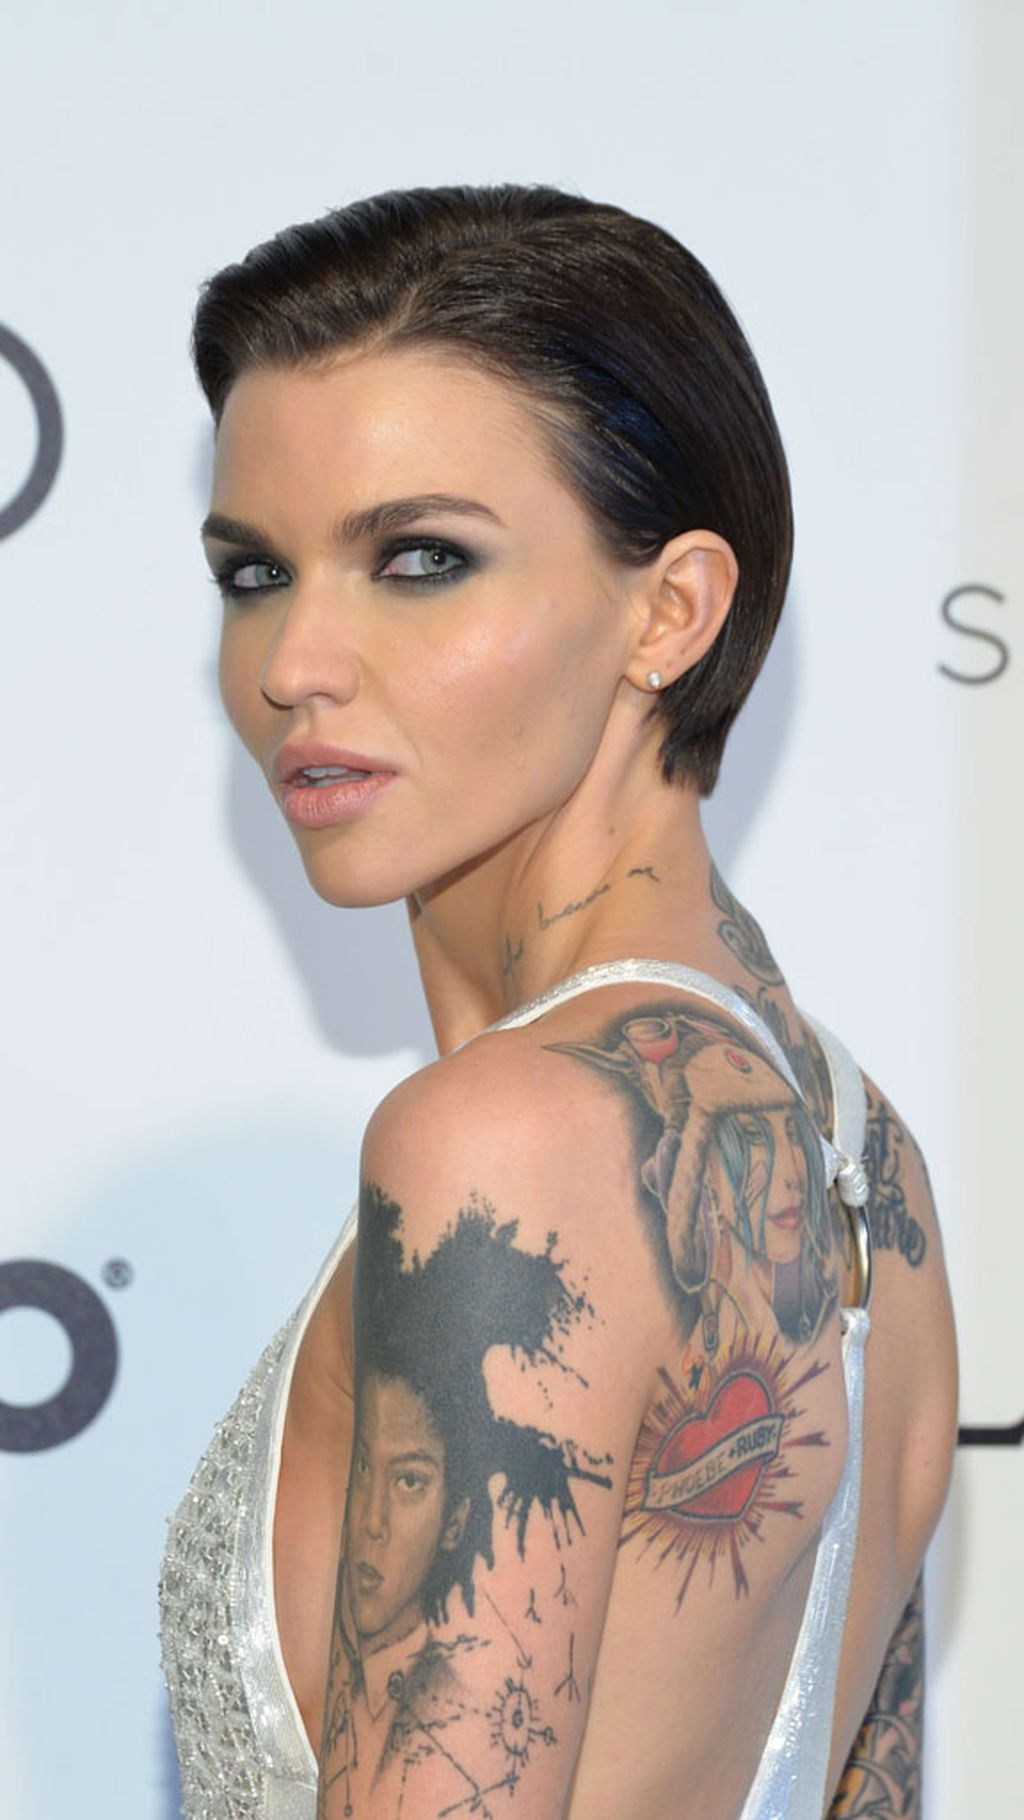 Ruby Rose Image Getty